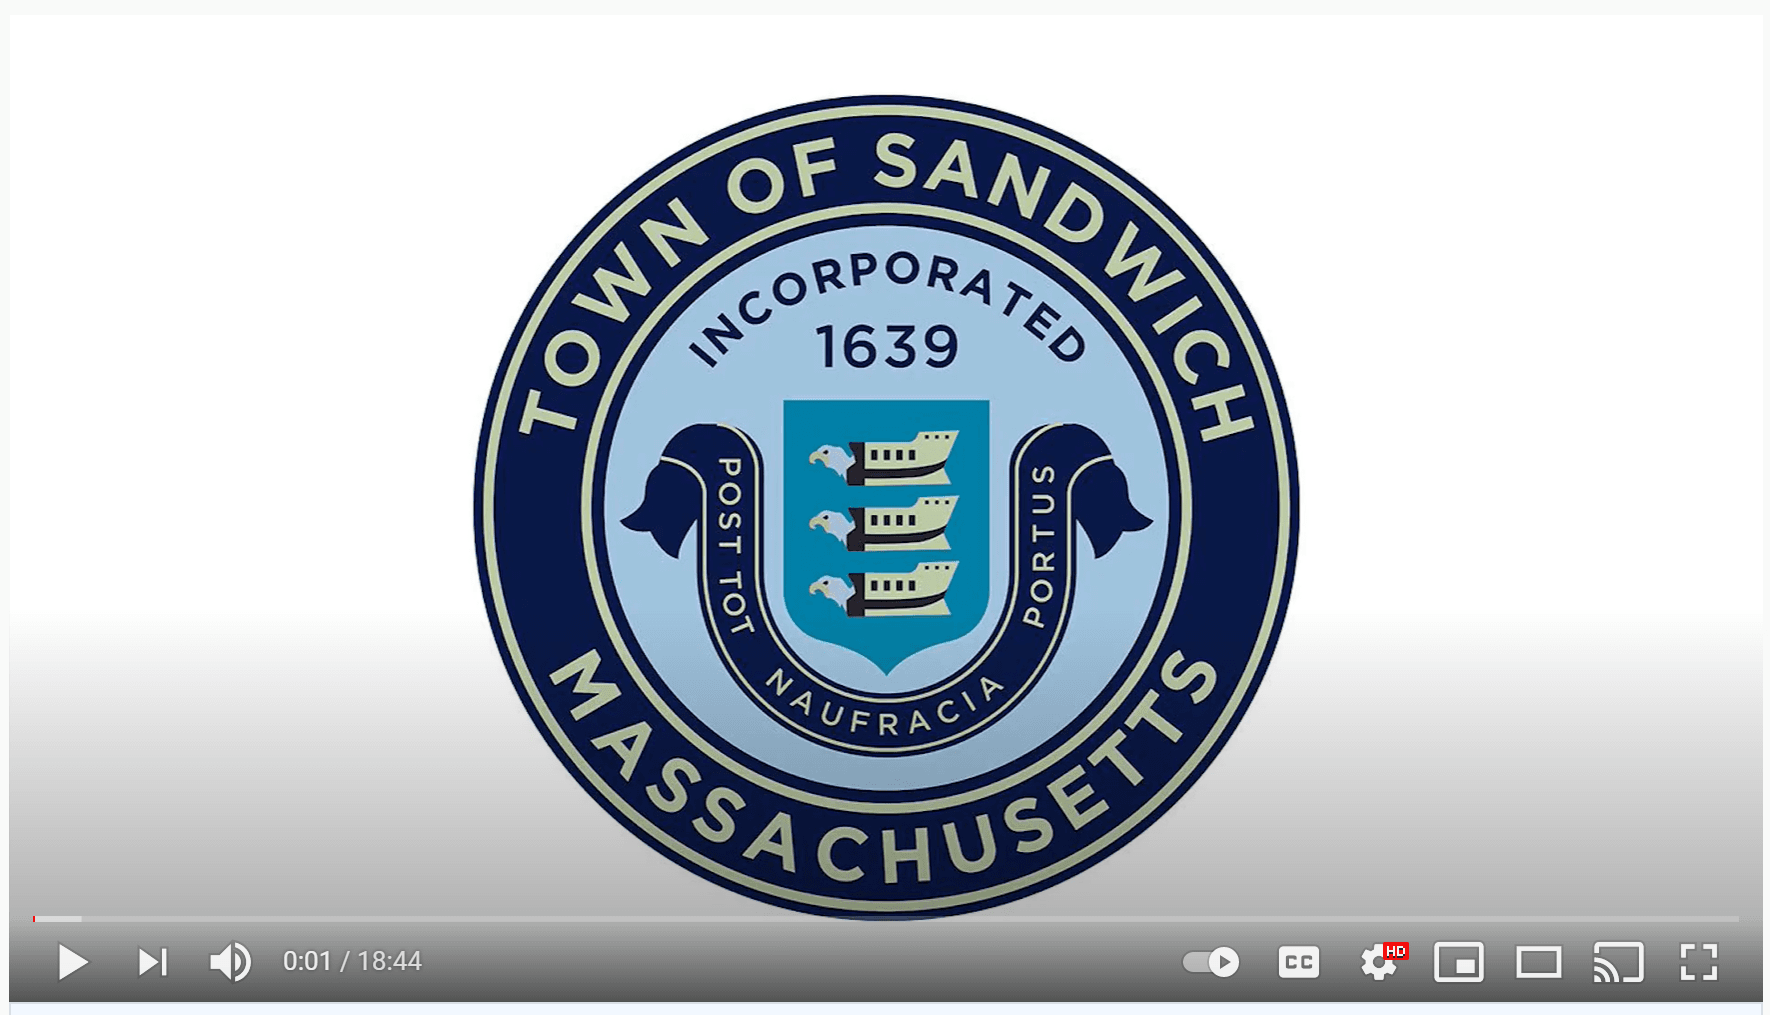 PSA Still Image of Town Seal